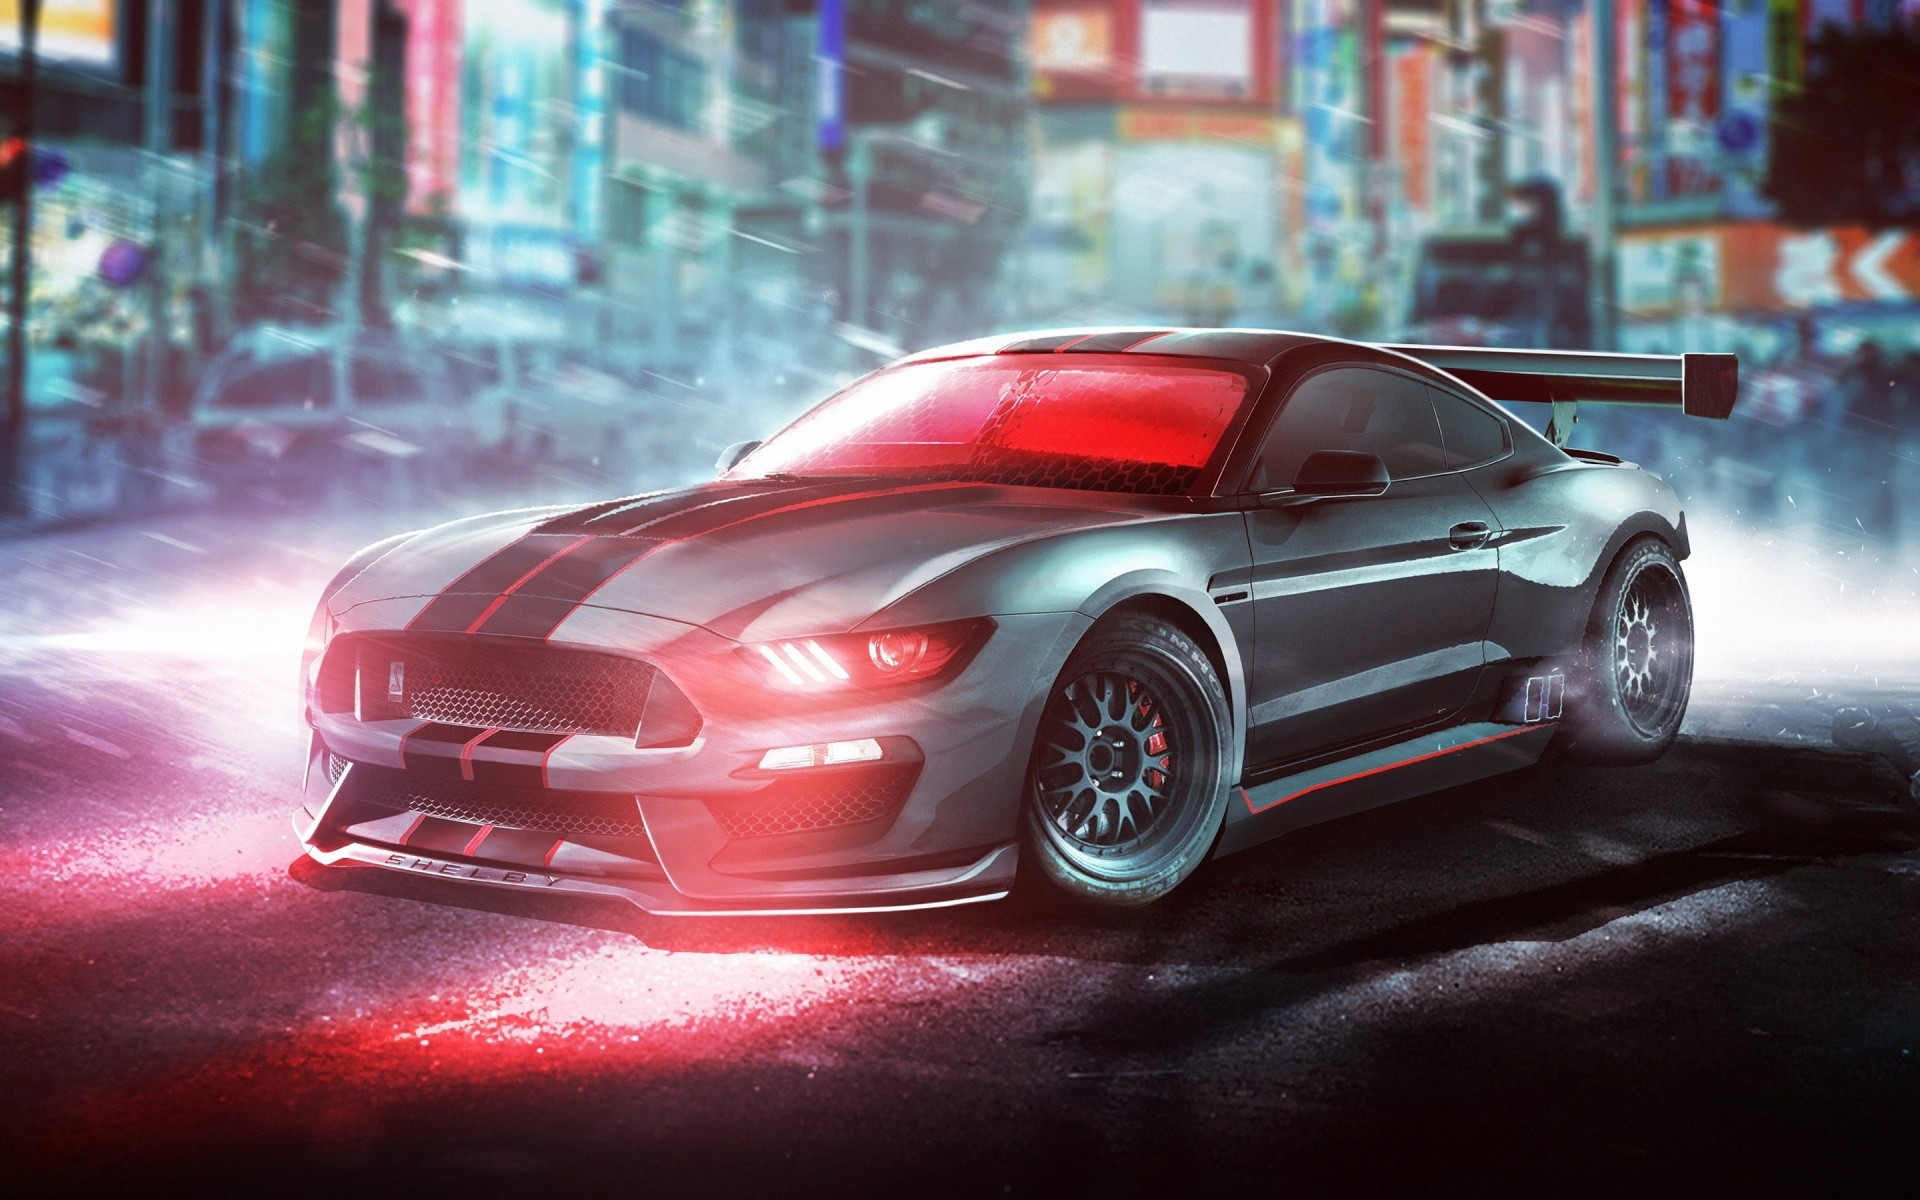 Free Cyclops Ford Shelby Mustang GT350R X Men phone wallpaper by kaitlynn8652578805